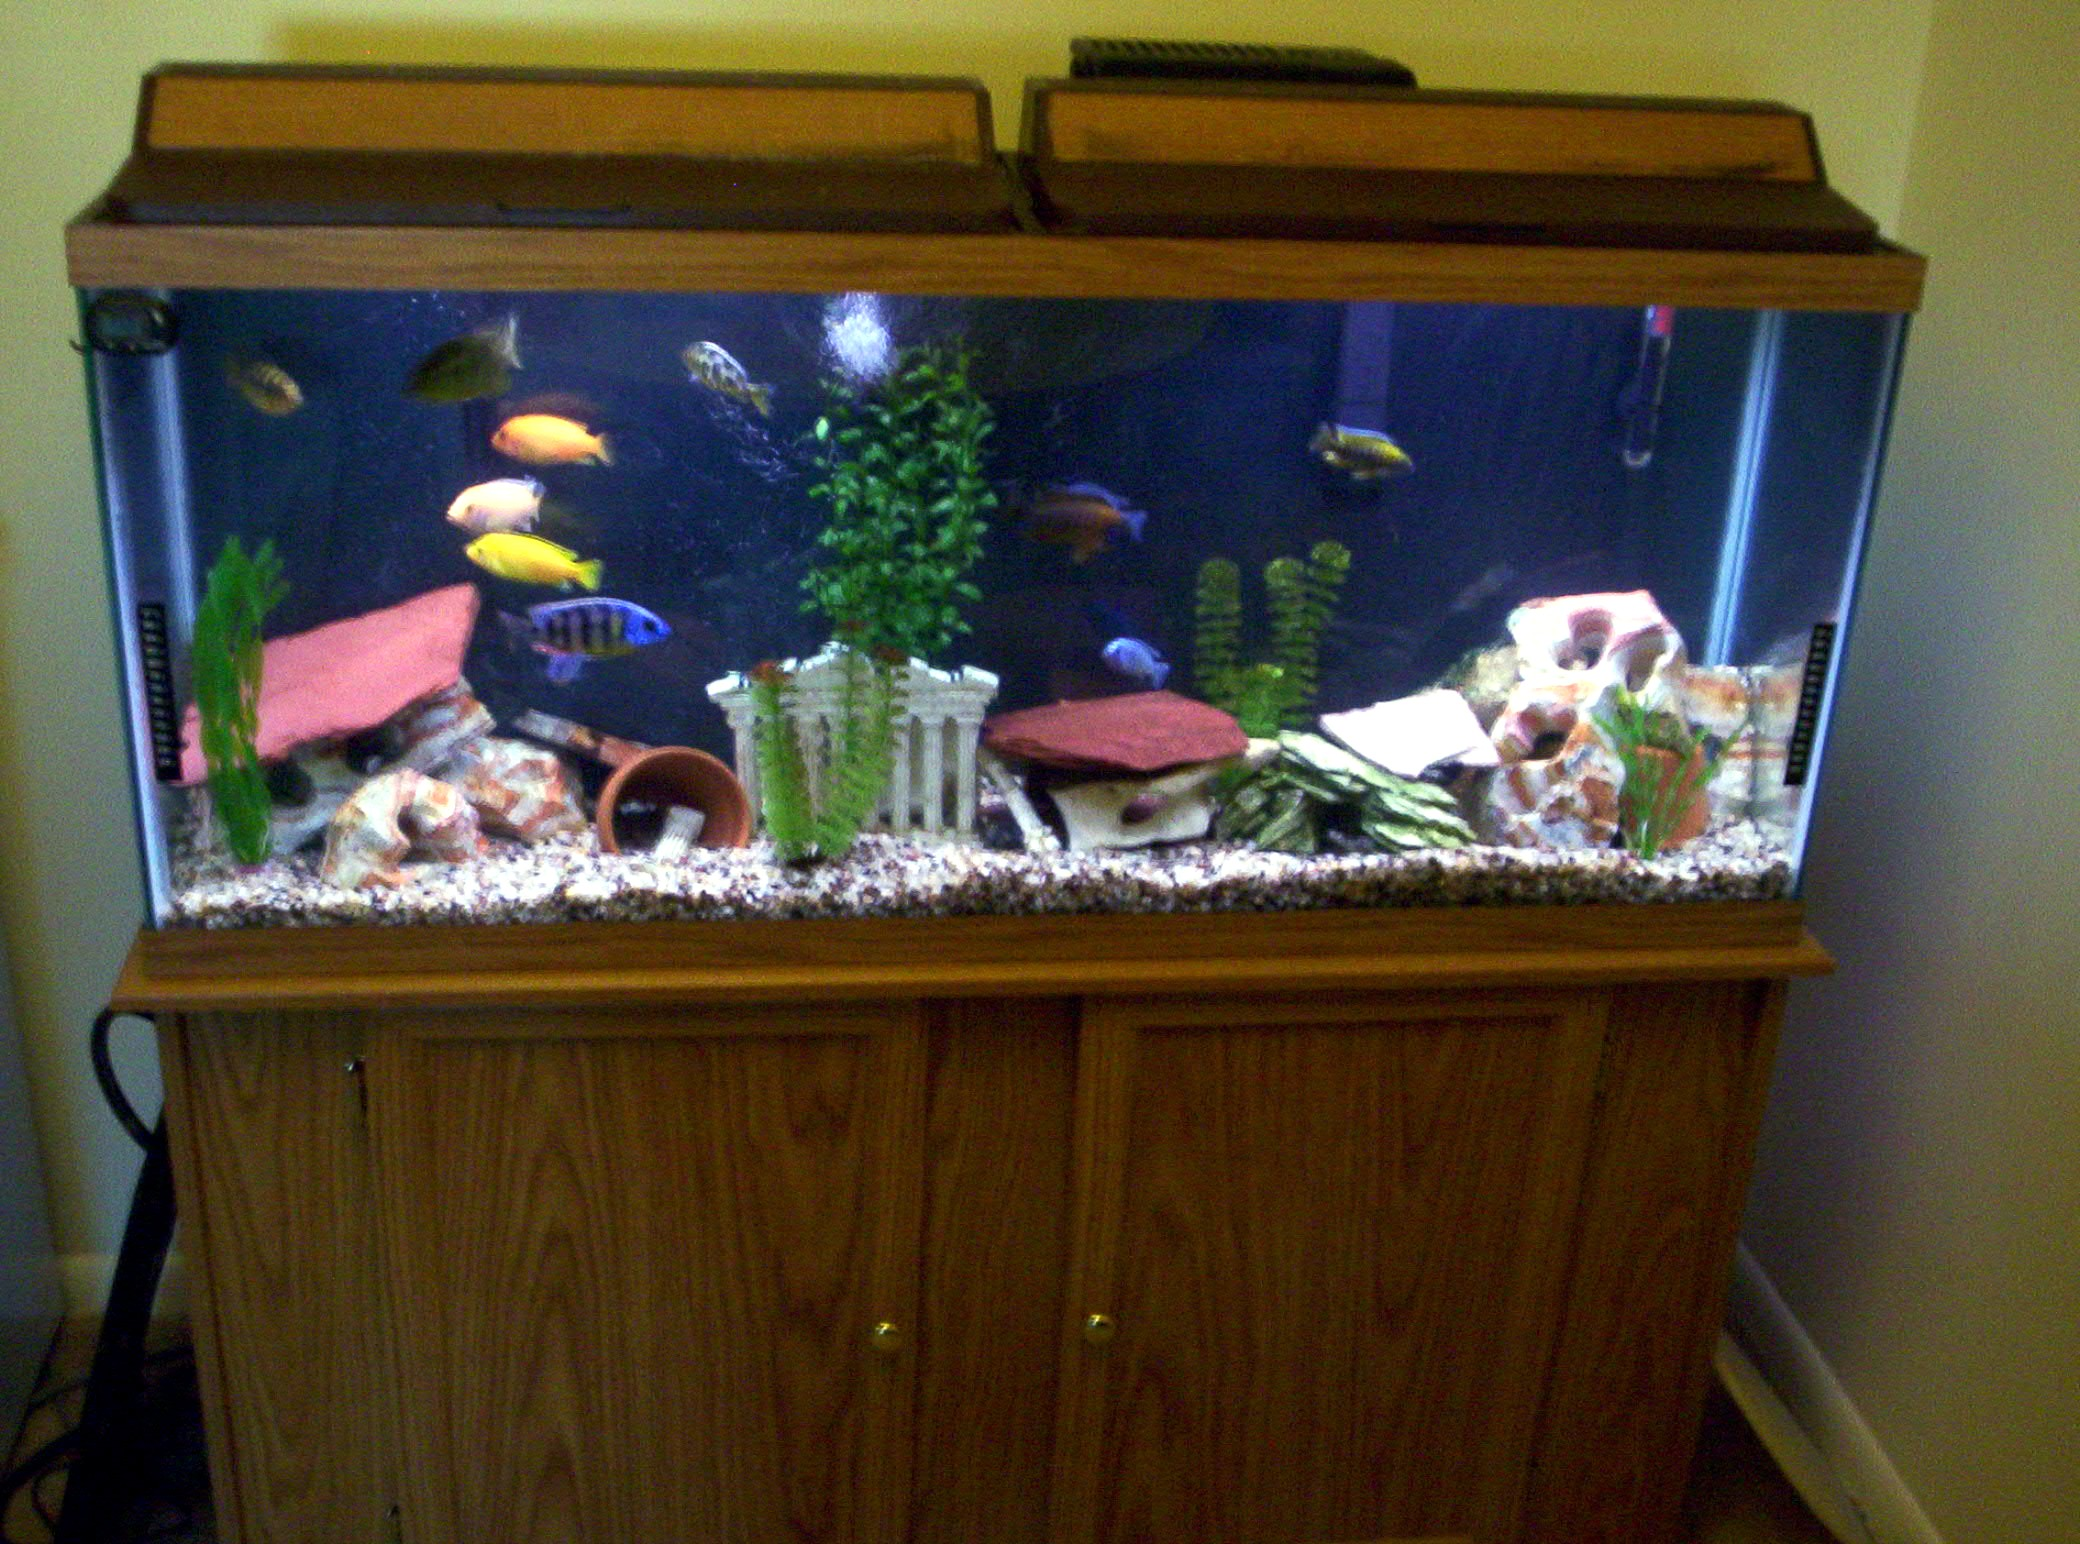 55 gallon fish tank in litres fish tank pauls 55 gallon for Oceanic fish tanks